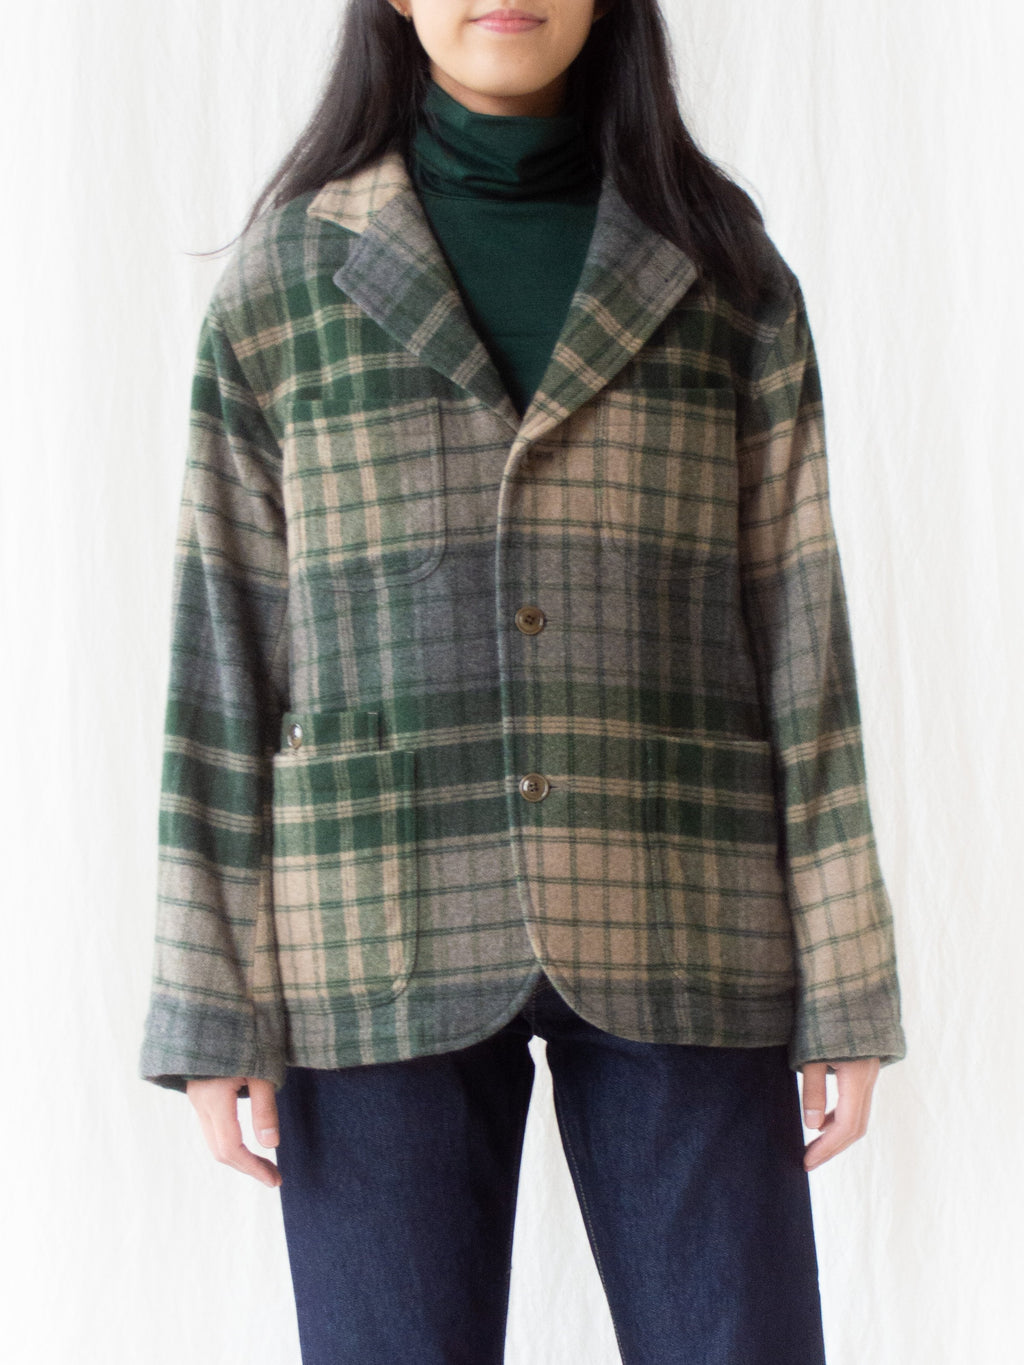 Namu Shop - ts(s) 4+1 Patch Pocket Jacket - Green/Gray Beige Wool Plaid